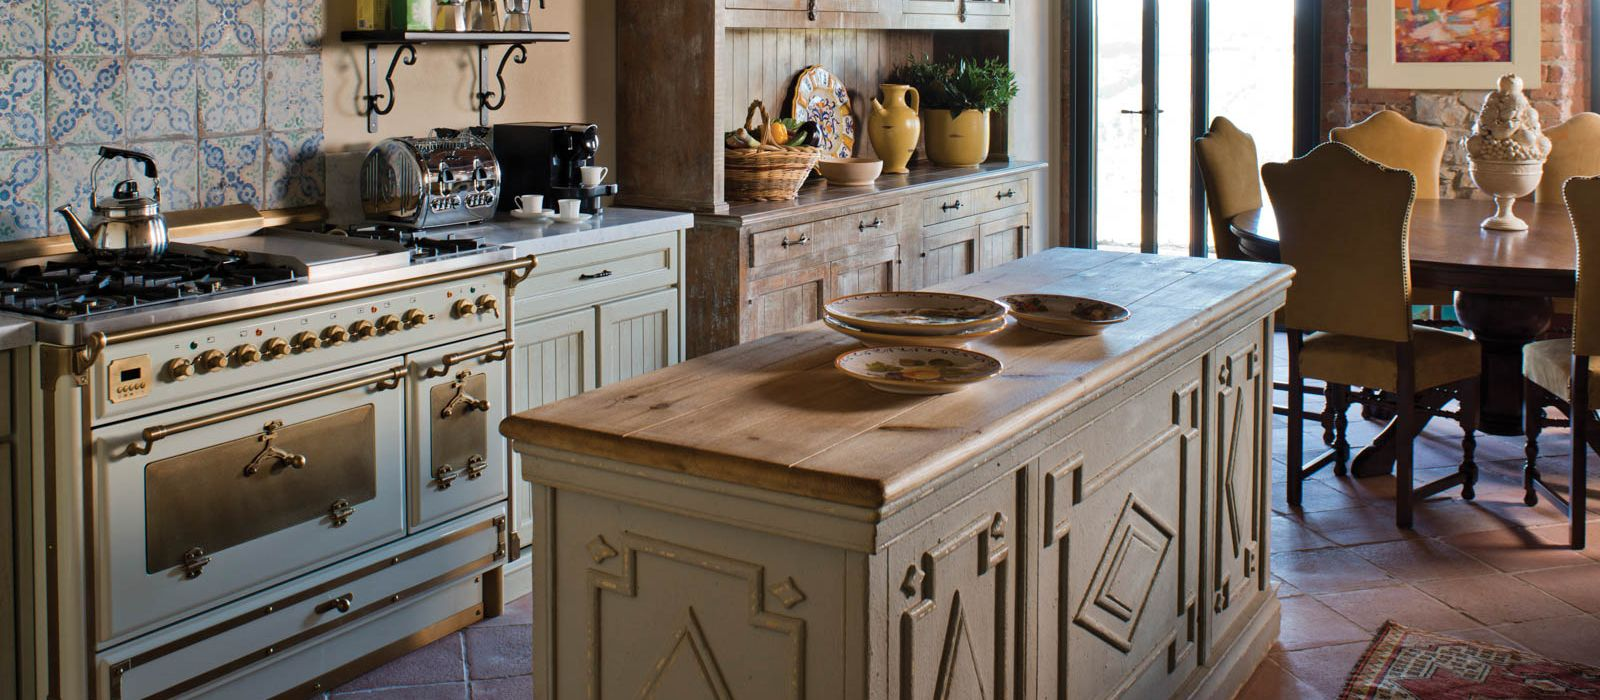 Villa Sant Antonio Kitchen